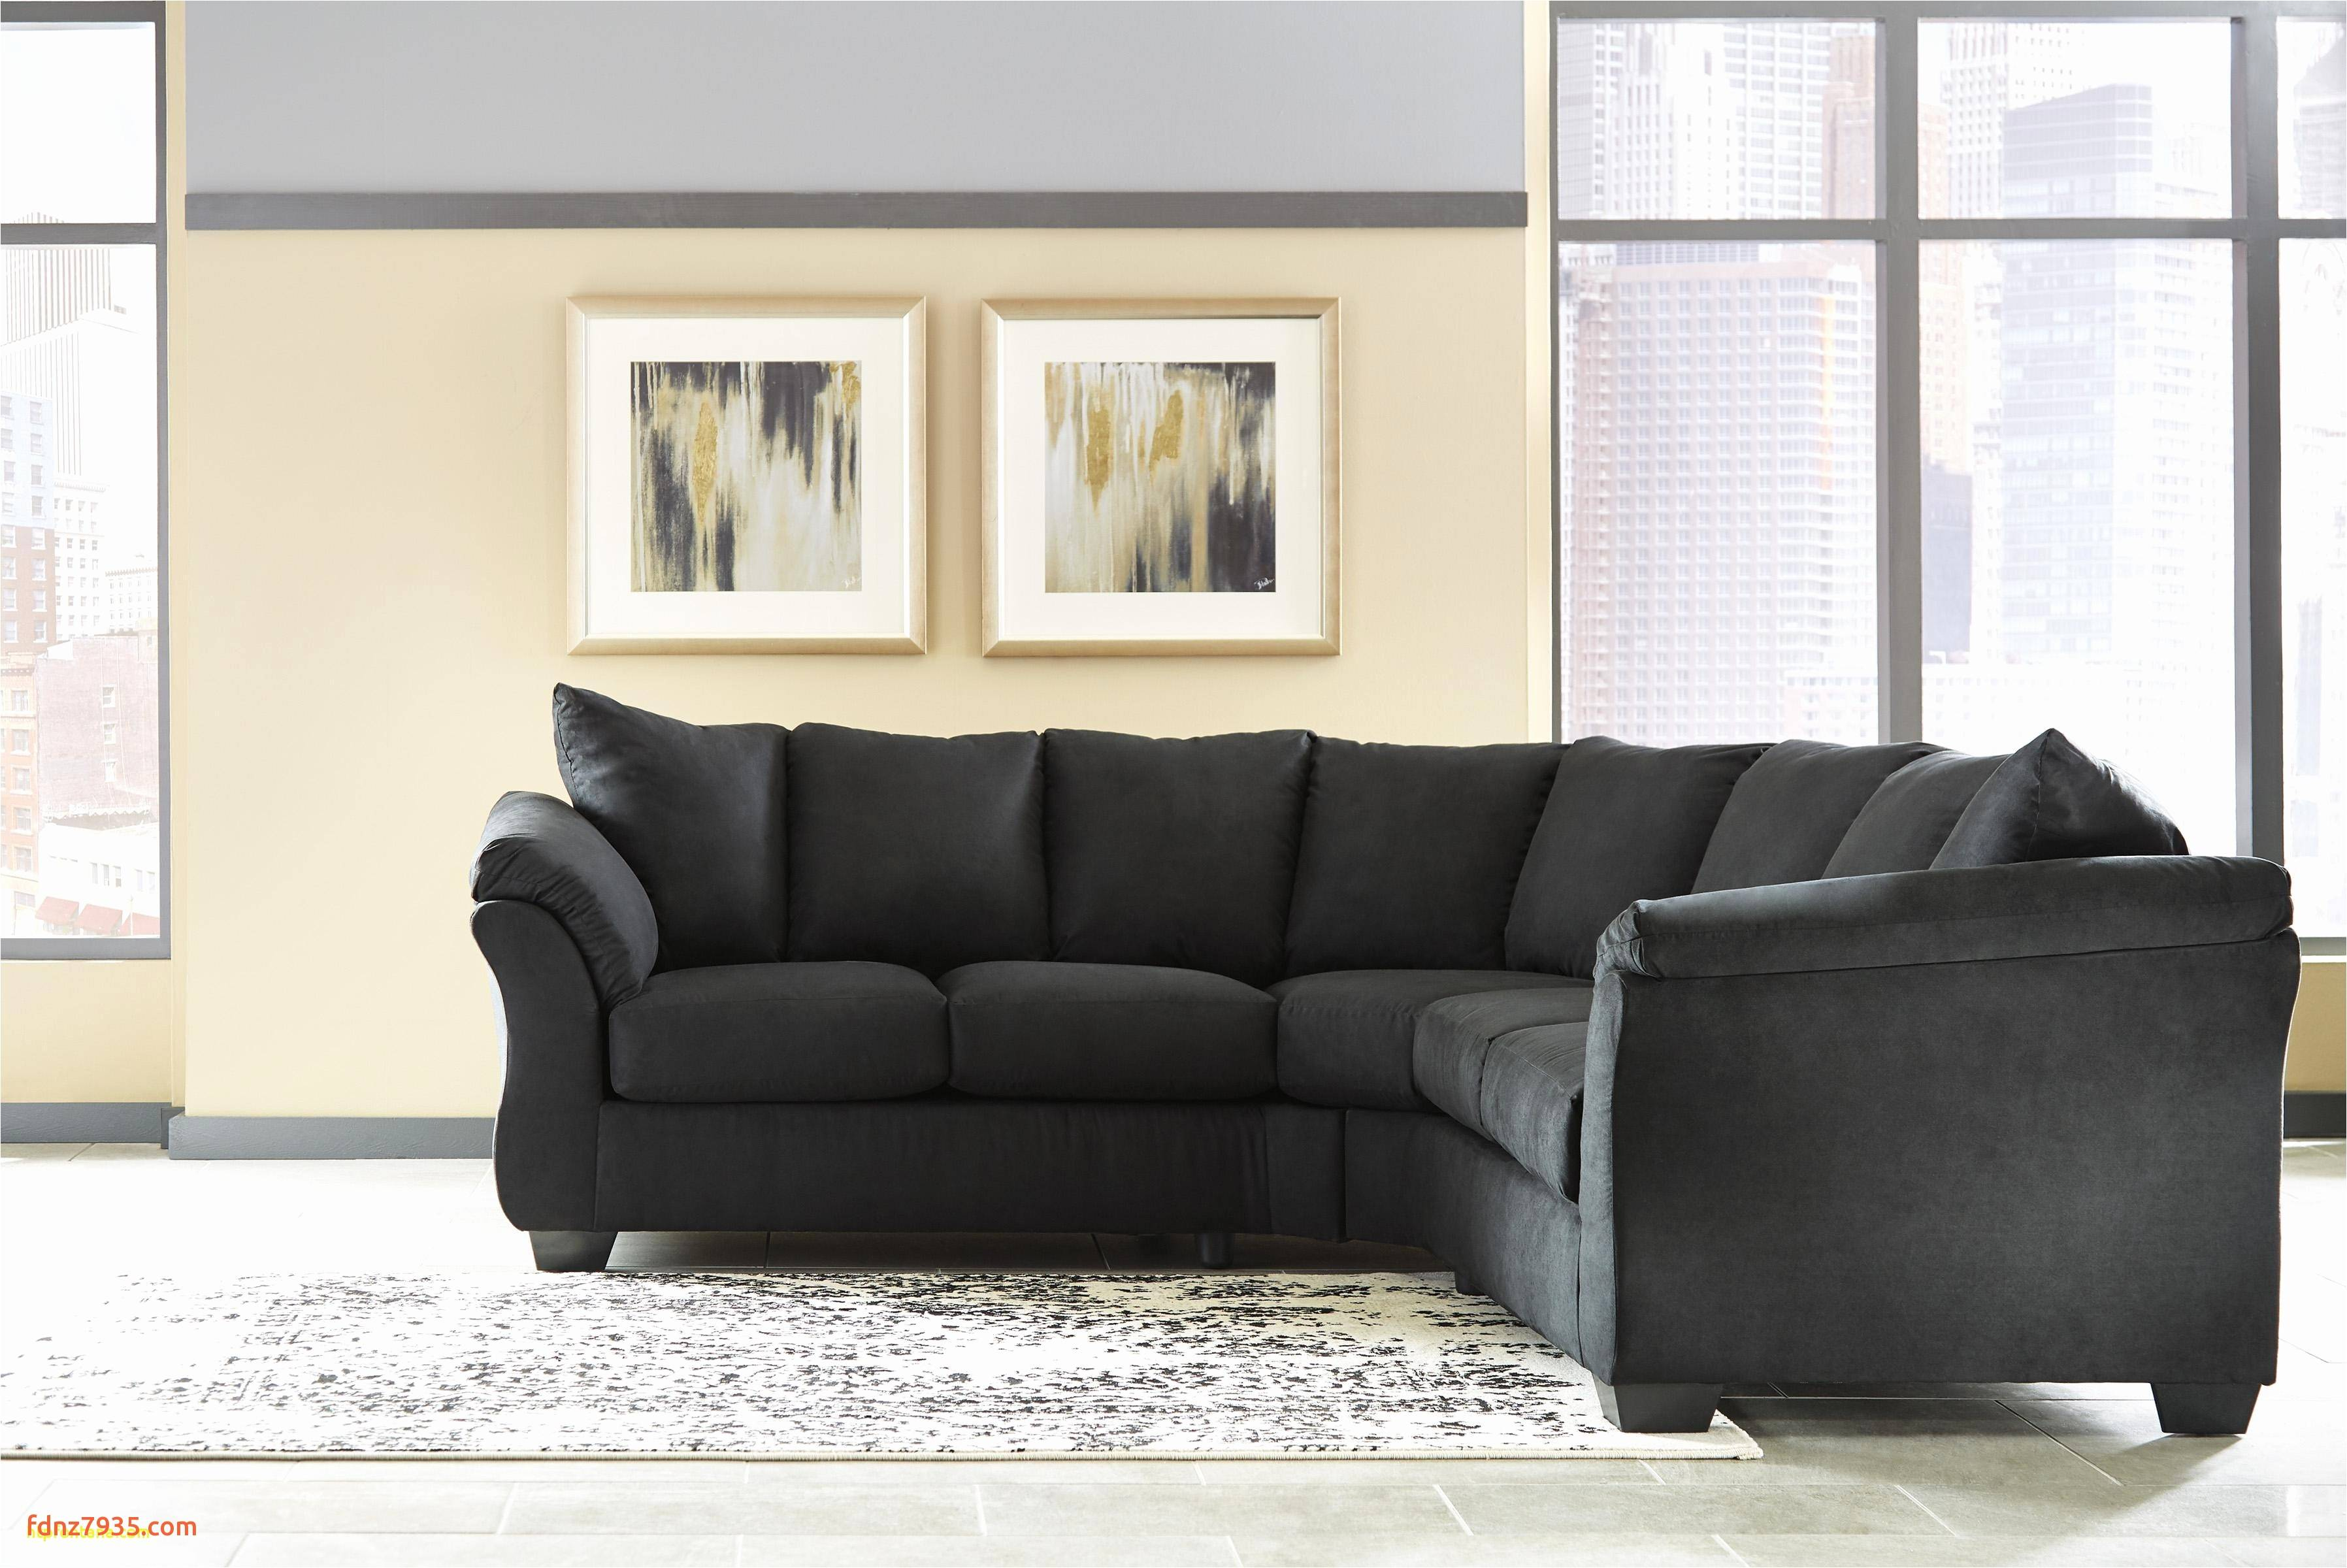 red and black leather sofa 50 inspirational vegan leather sofa 50 s of red and black leather sofa